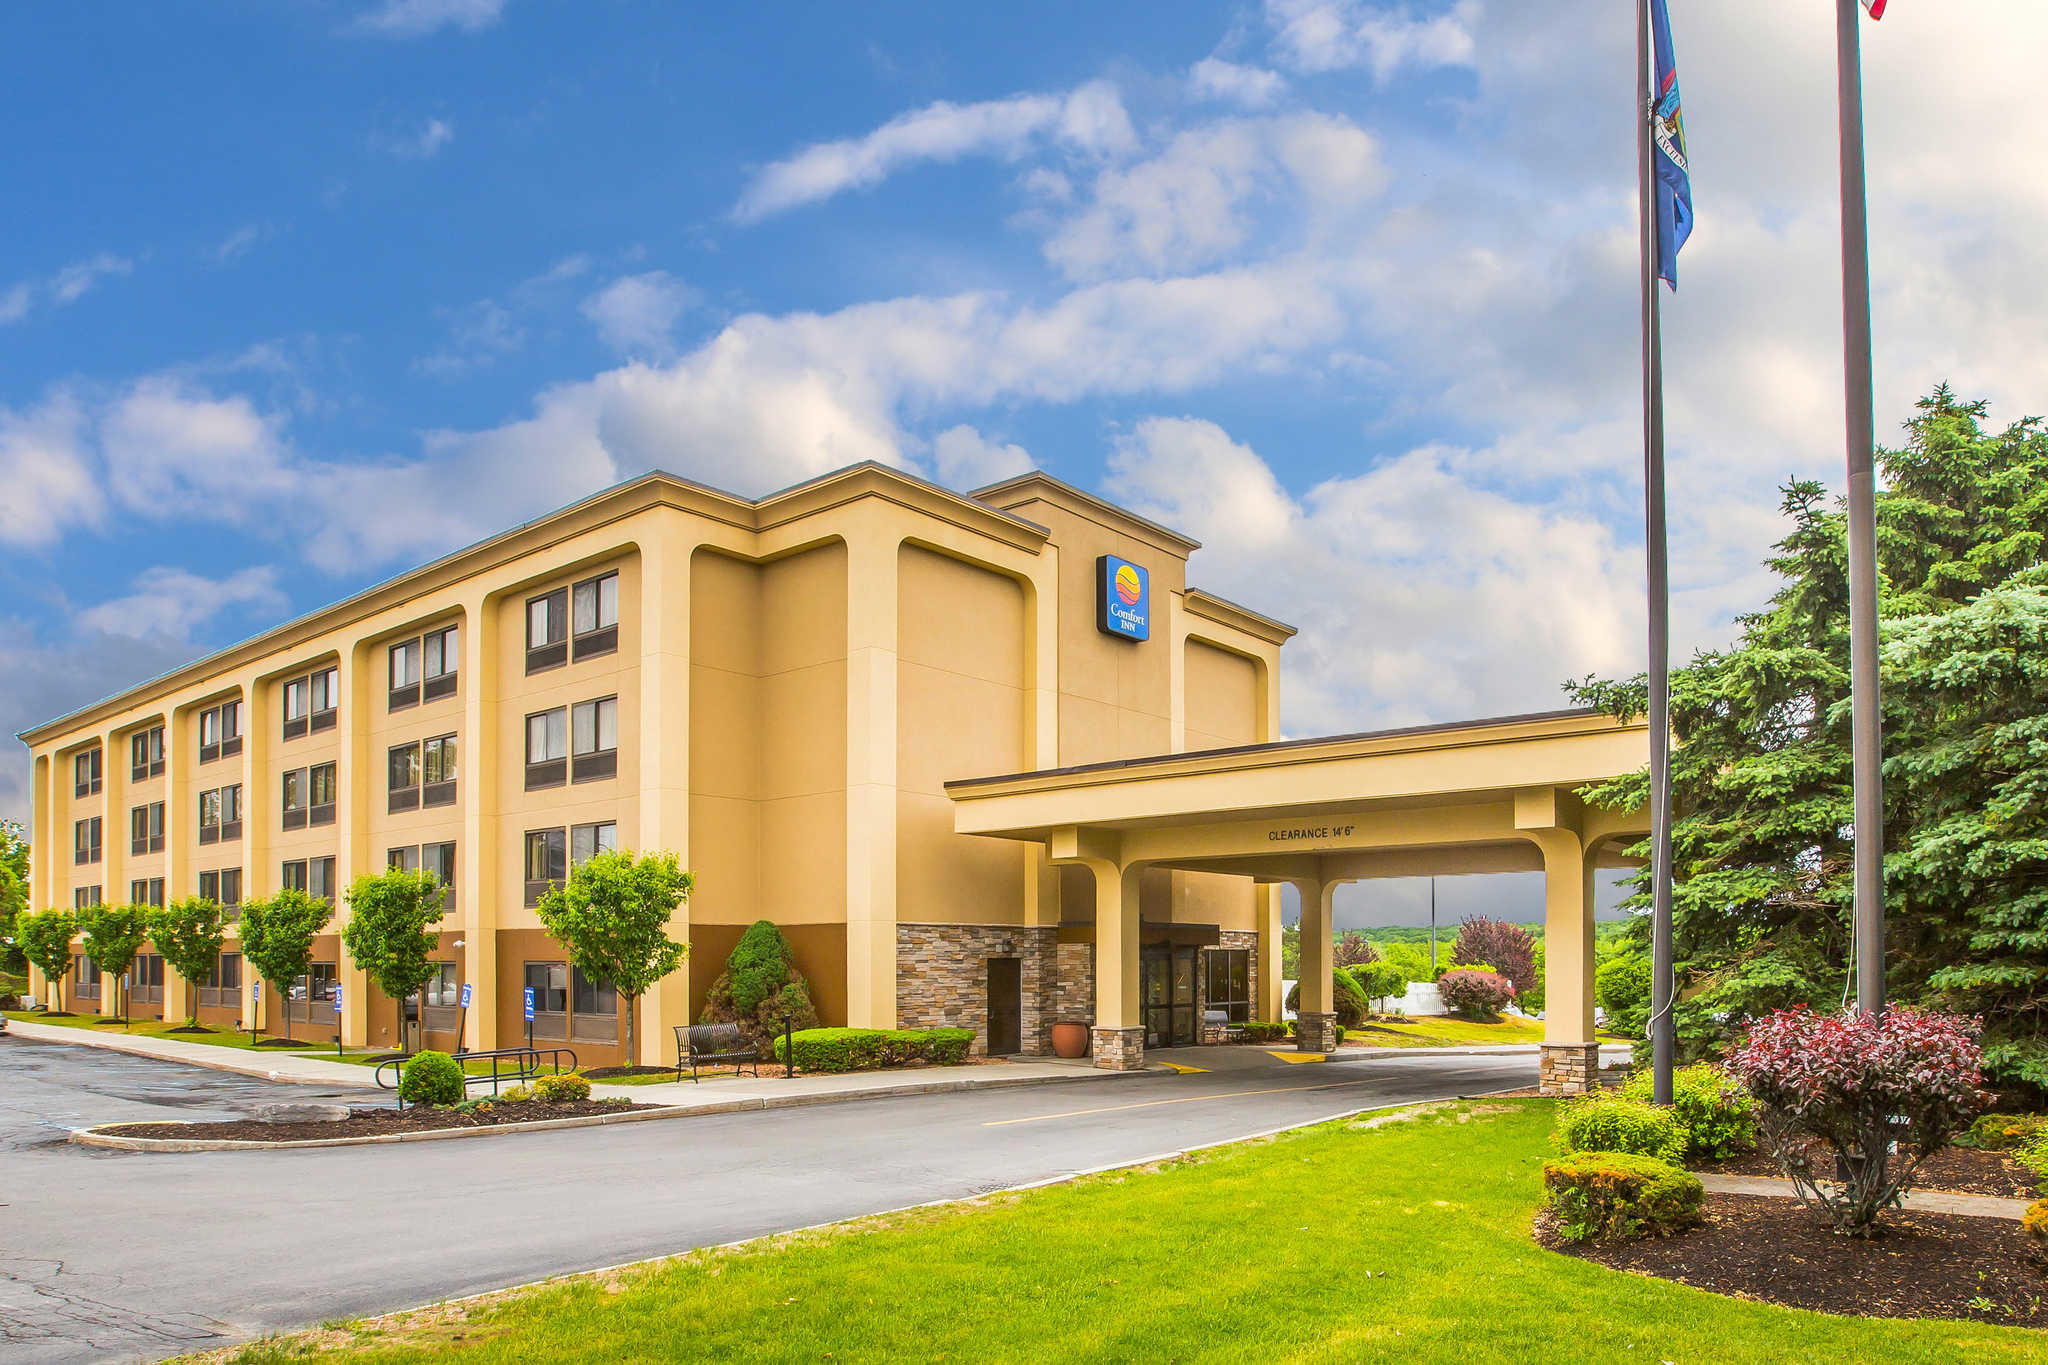 Hotels Near St Rose College Albany